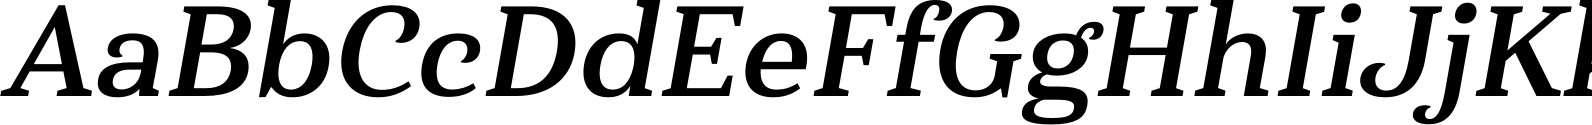 Haboro Serif Norm Bold It Font